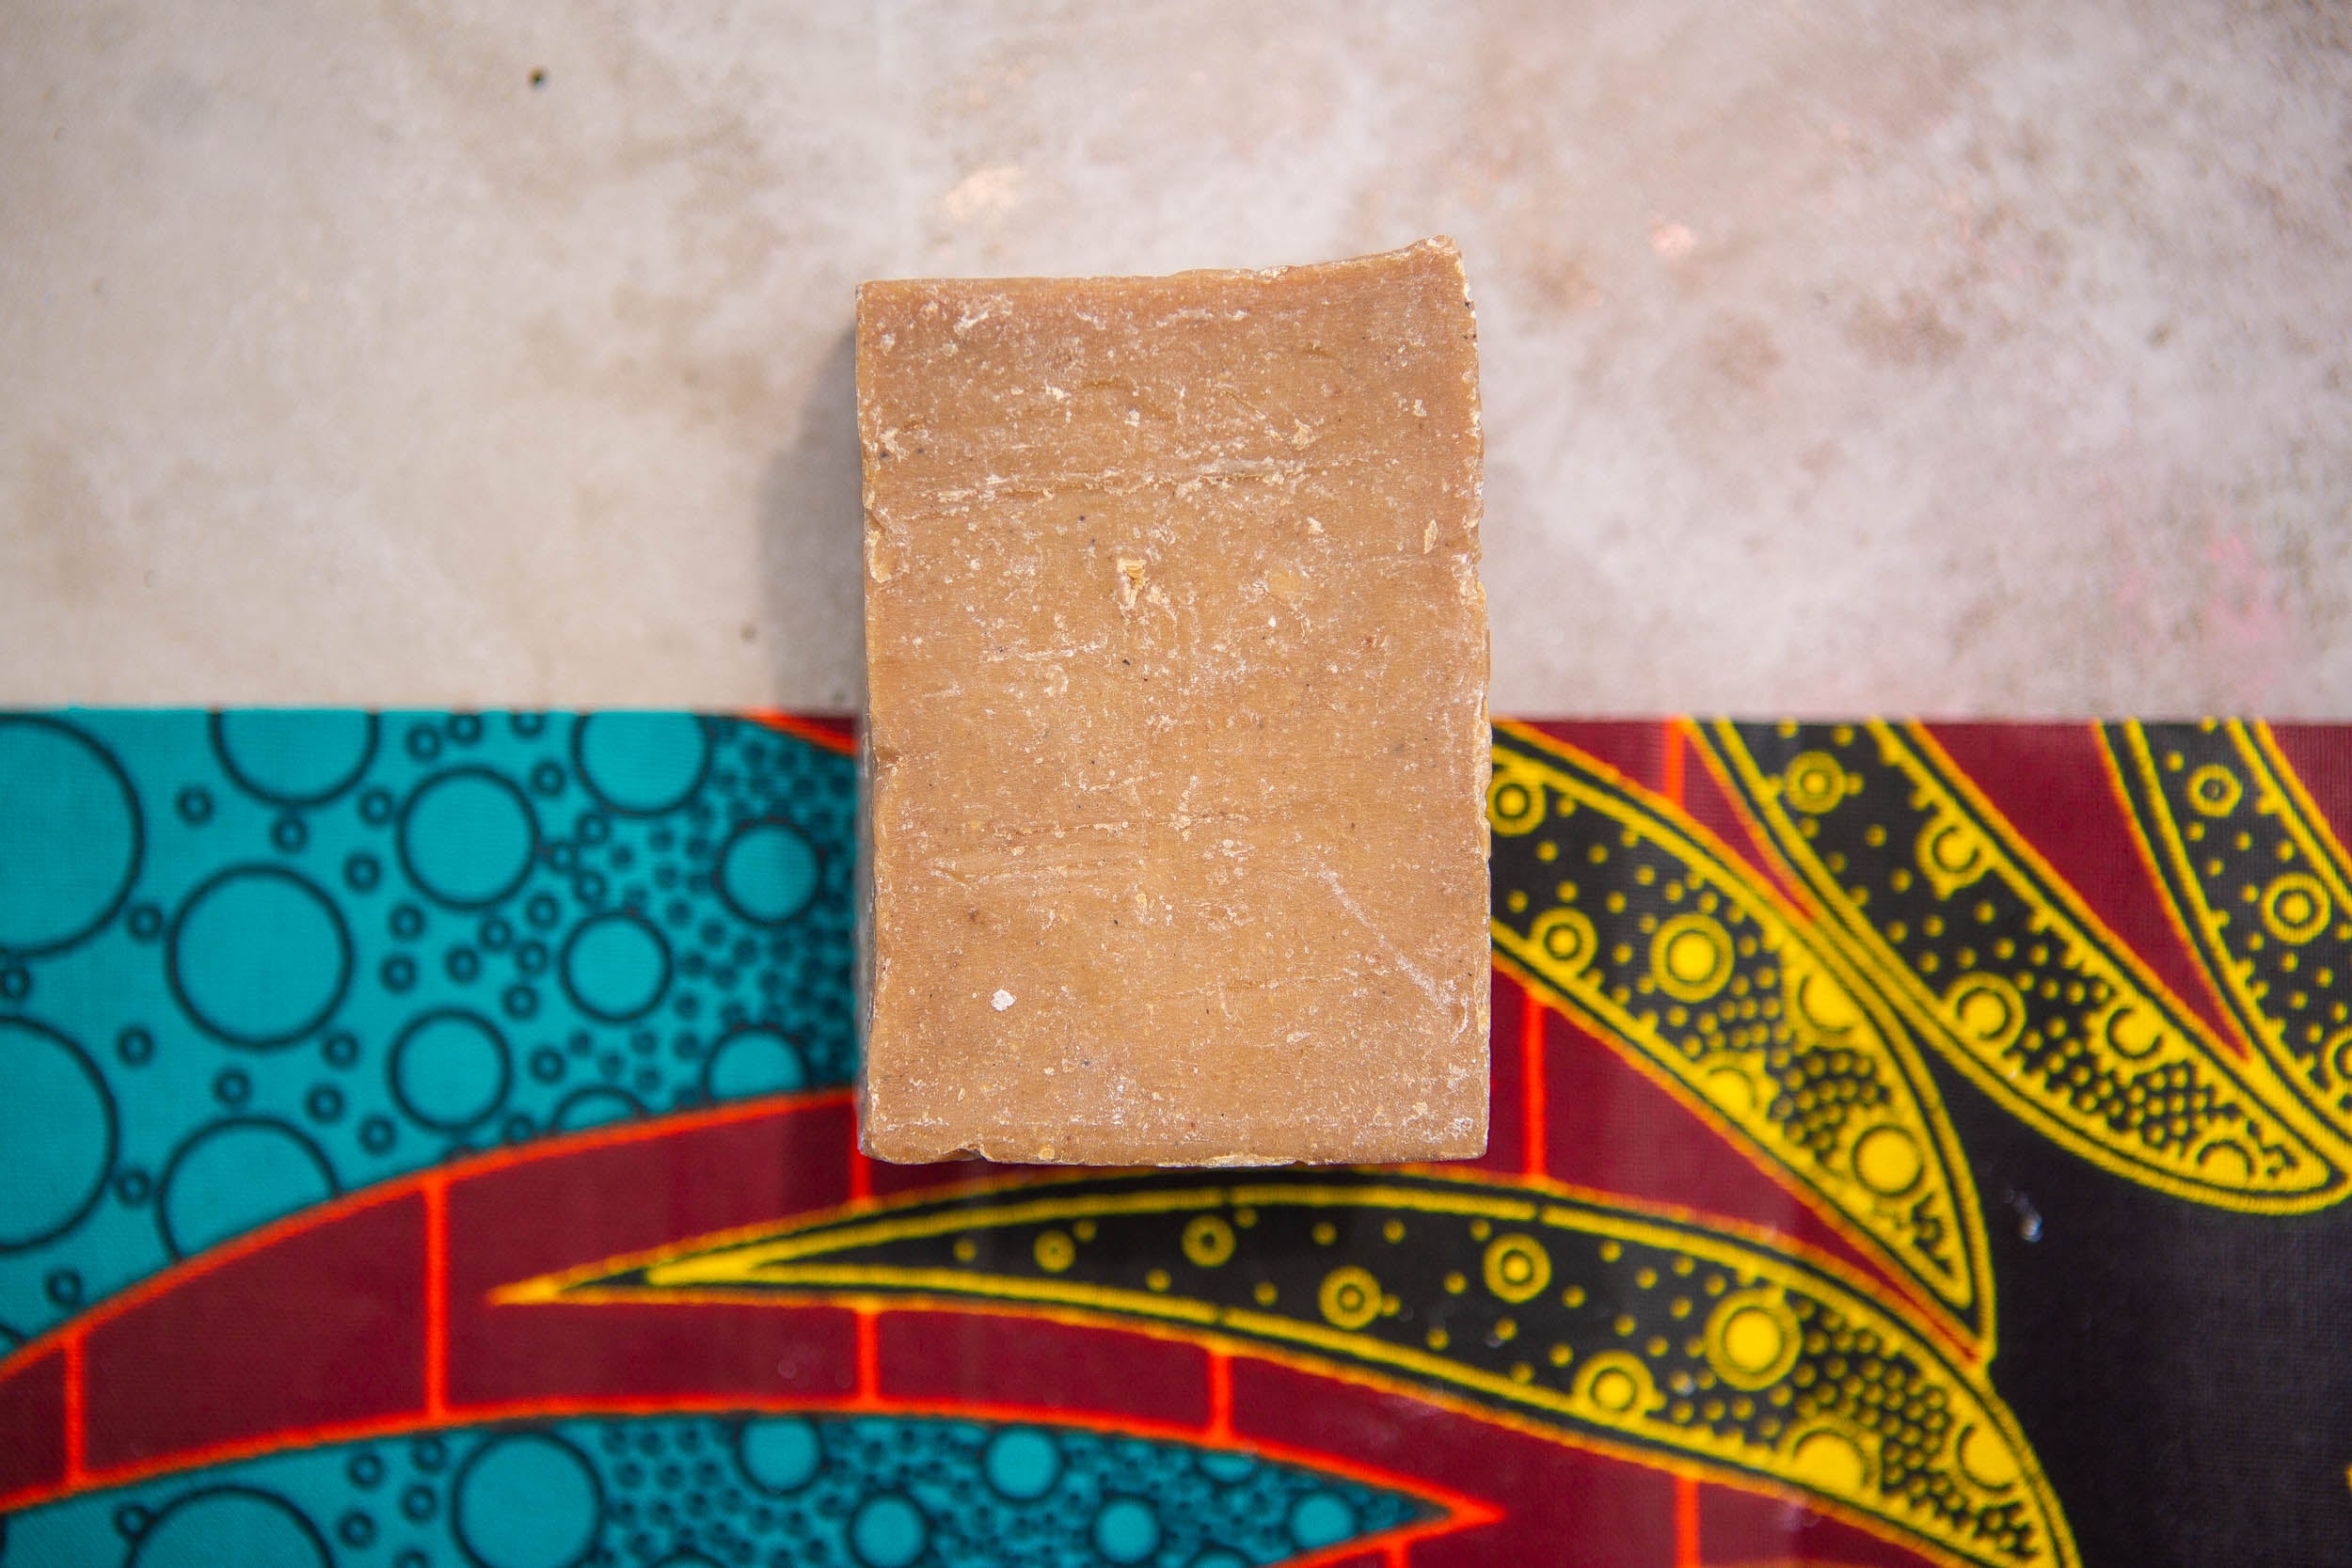 Zambeezi hand made, Fair Trade, beeswax soap crafted from ethically sourced, sustainable palm kernel oil